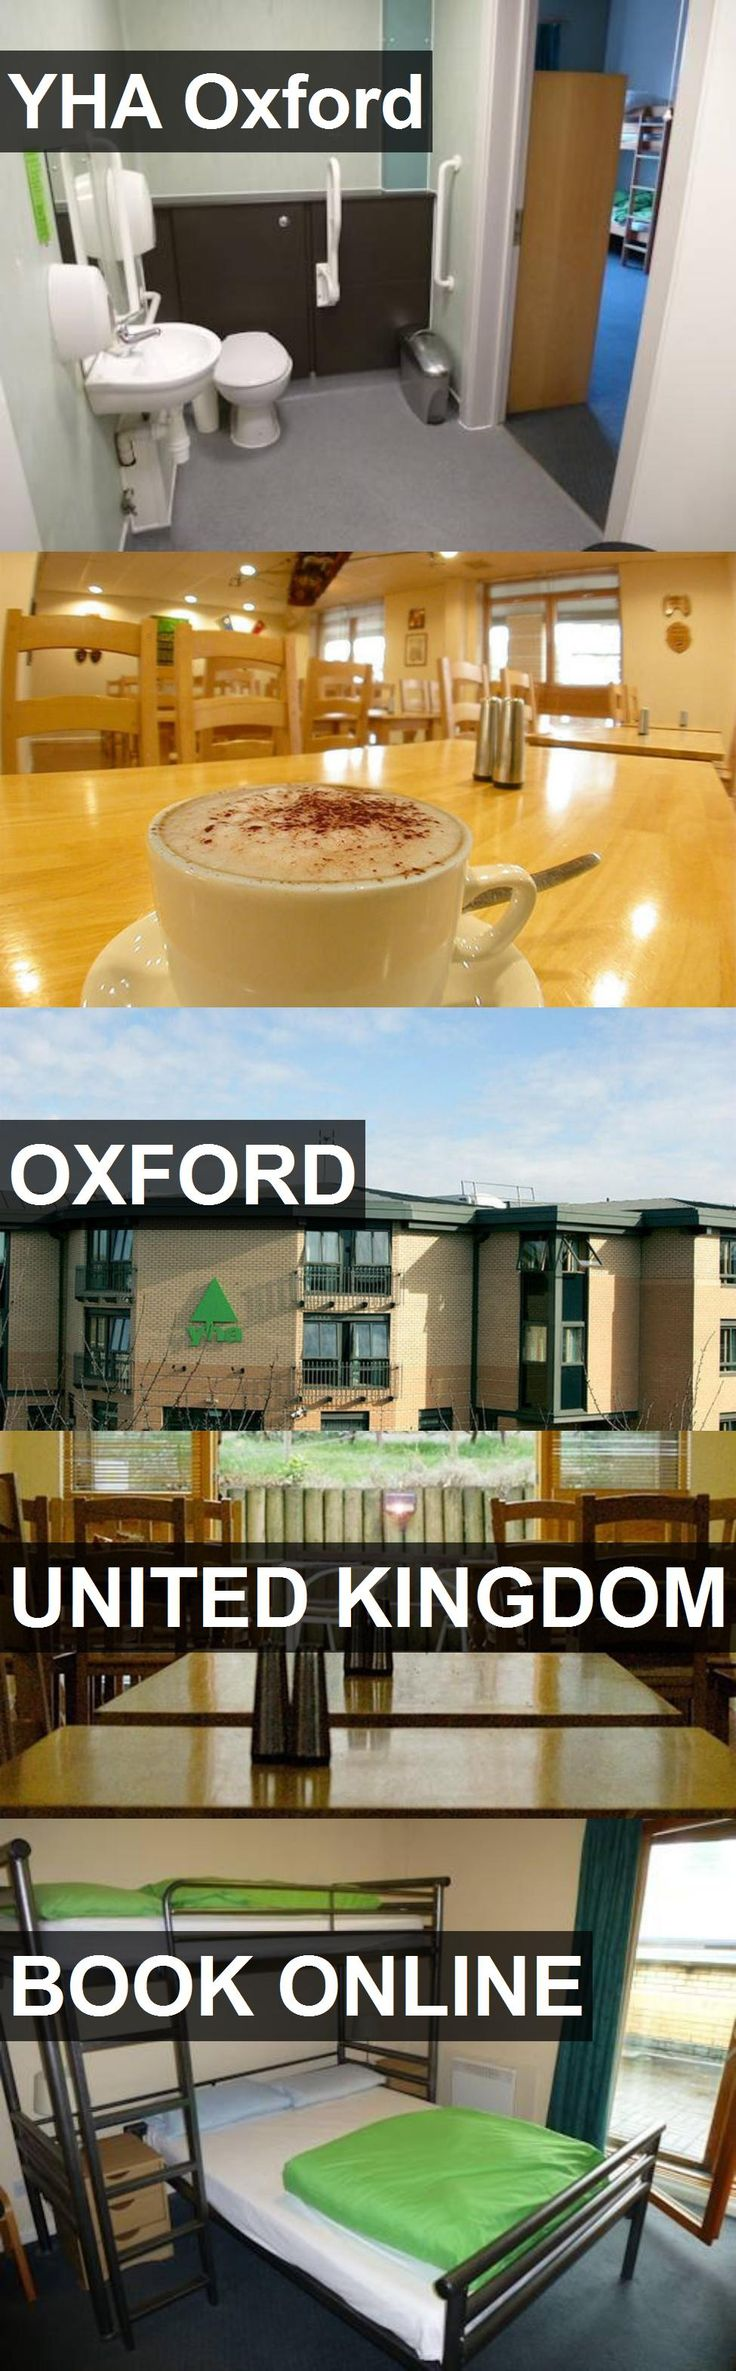 Hotel YHA Oxford in Oxford, United Kingdom. For more information, photos, reviews and best prices please follow the link. #UnitedKingdom #Oxford #travel #vacation #hotel